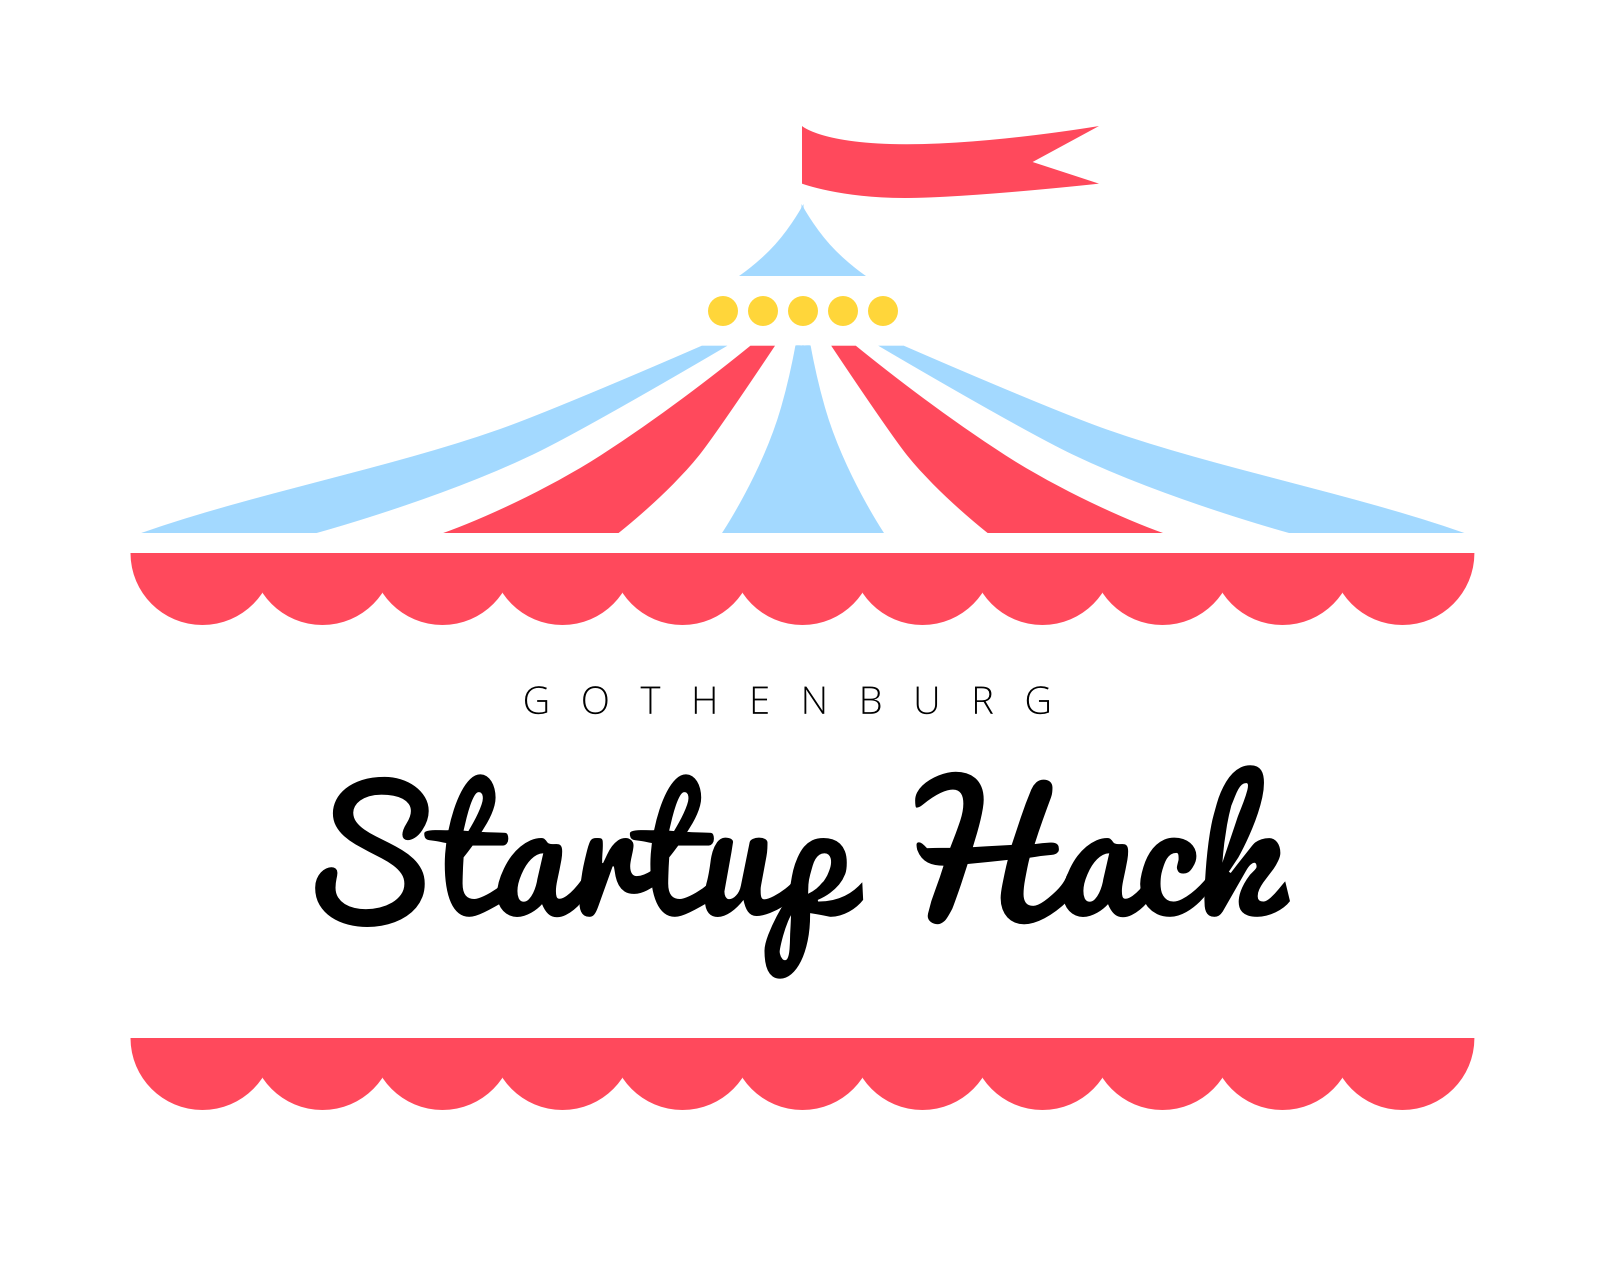 tent3.png